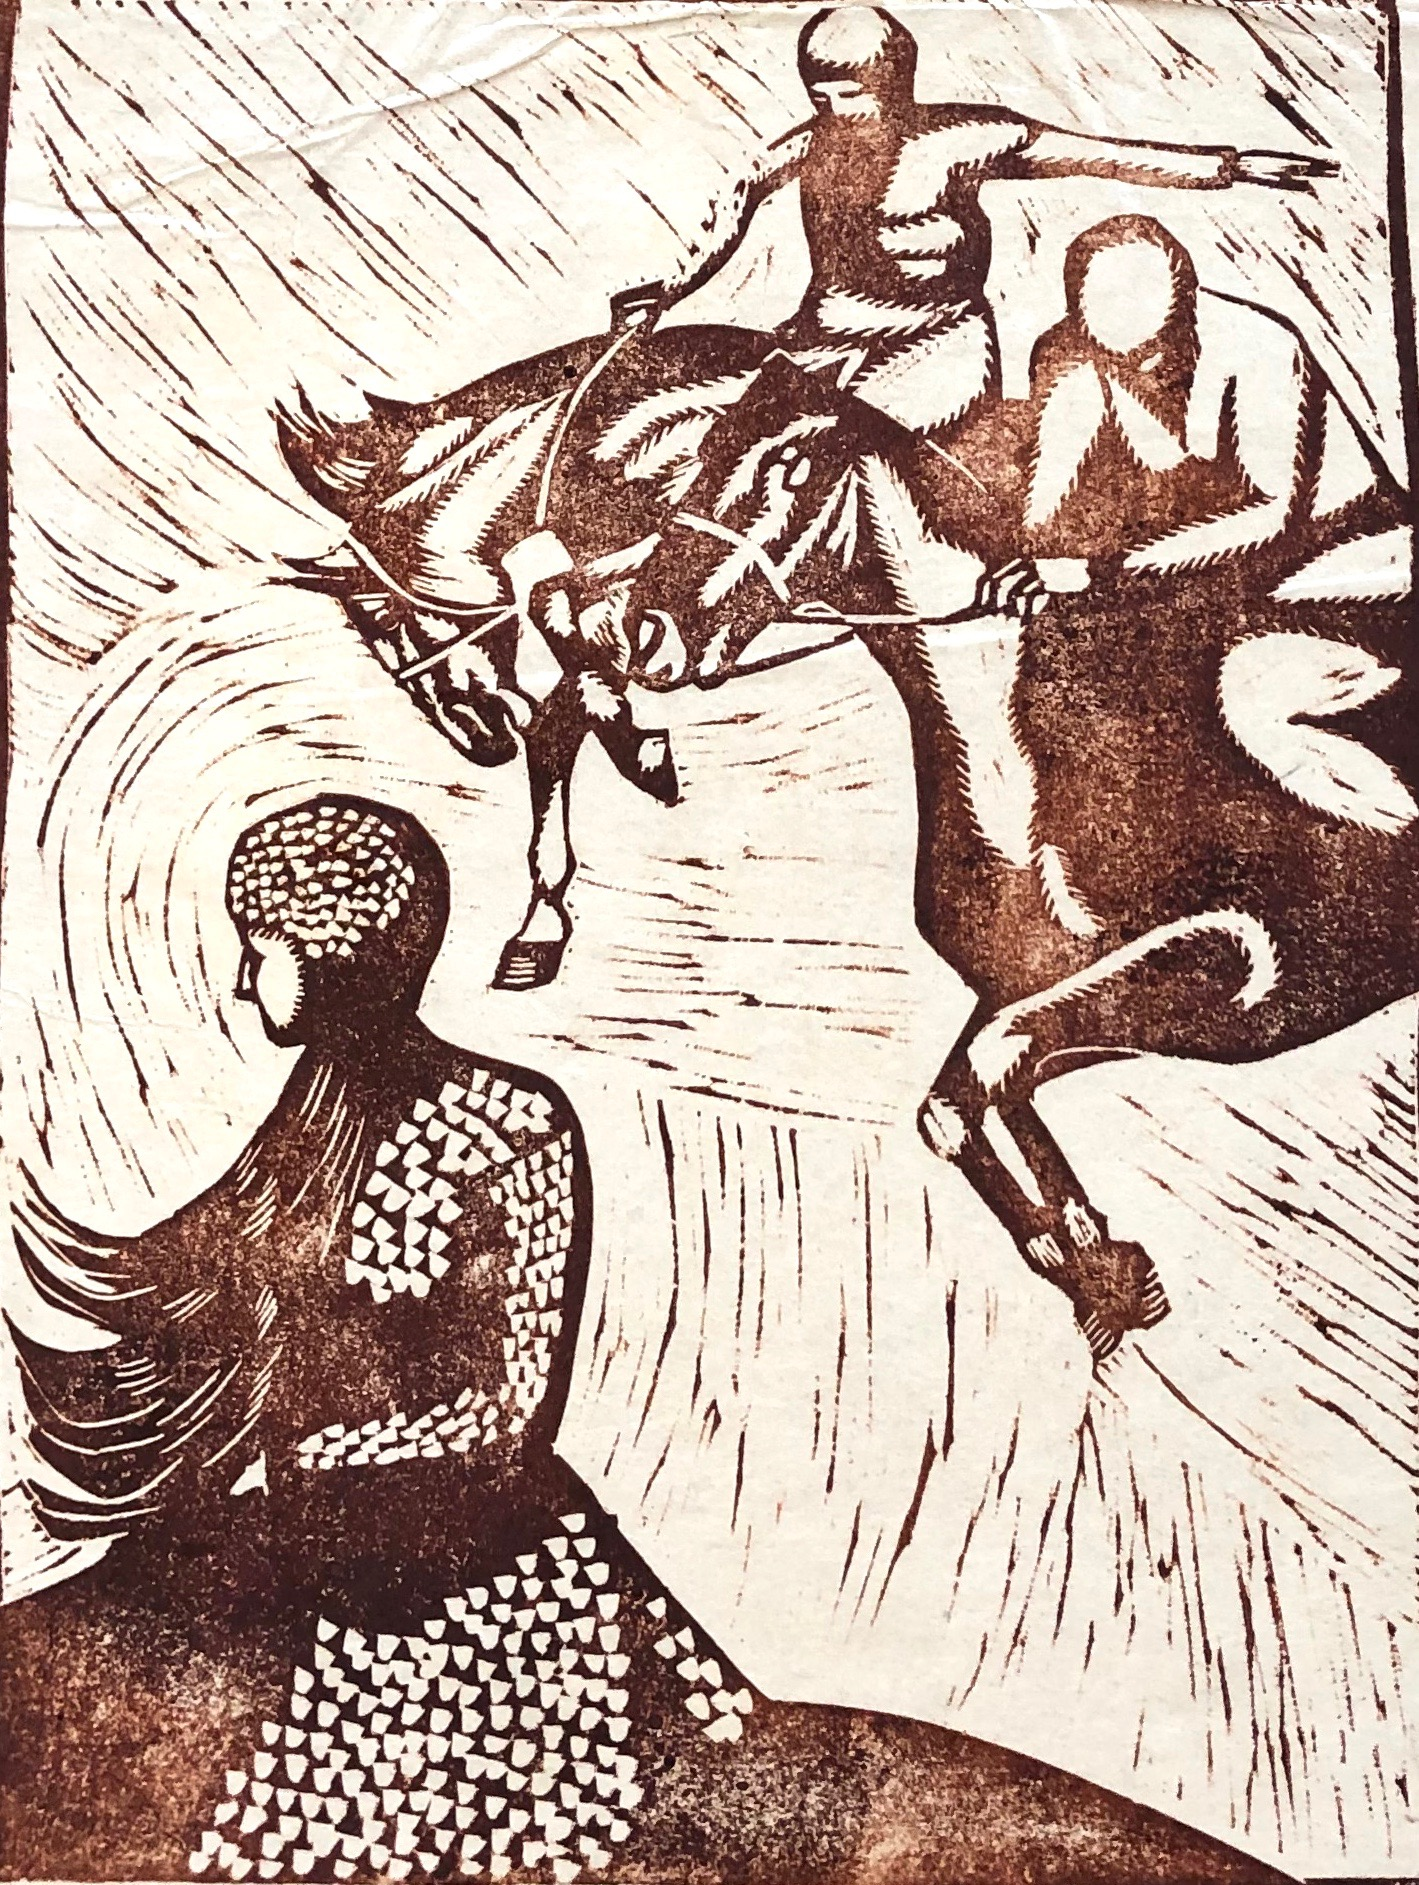 Maria Heckert-Fechner | Valkyrie Ride | 1925 | linocut | signed, dated, titled and described | 29 x 22 cm